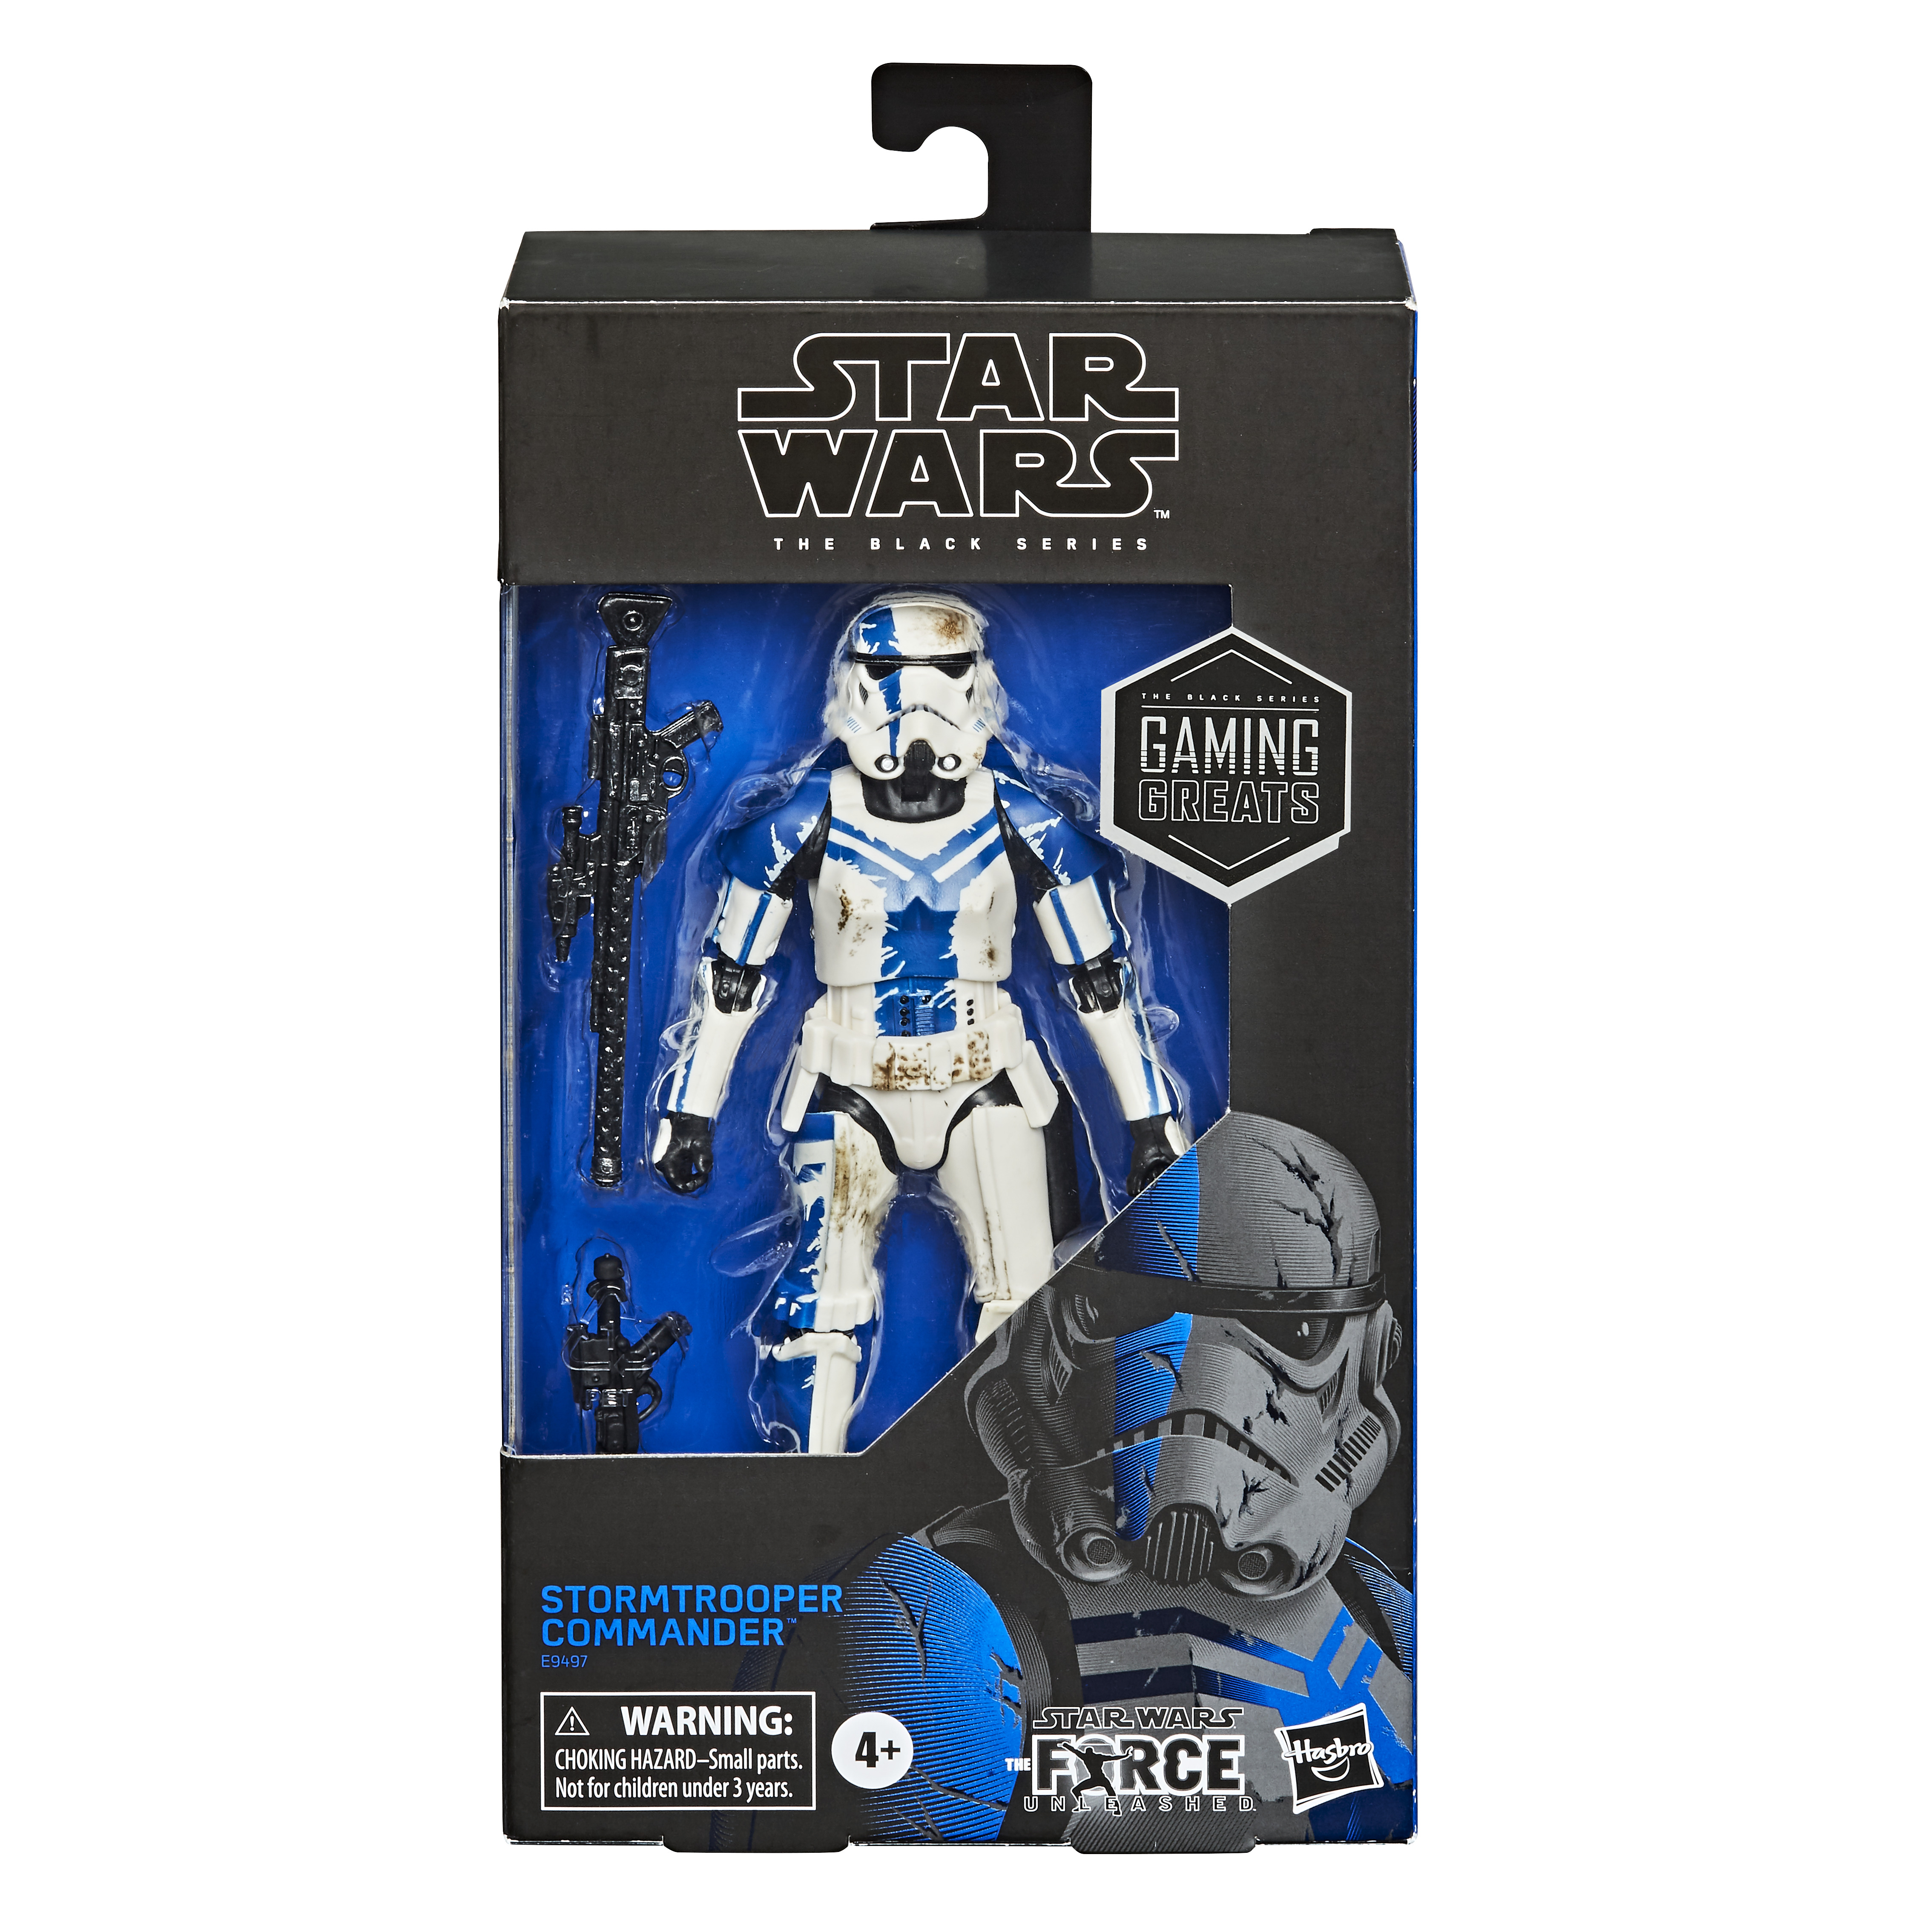 "Star Wars The Black Series Stormtrooper Commander Action Figure 6"" Reihe E9497 5010993689552"